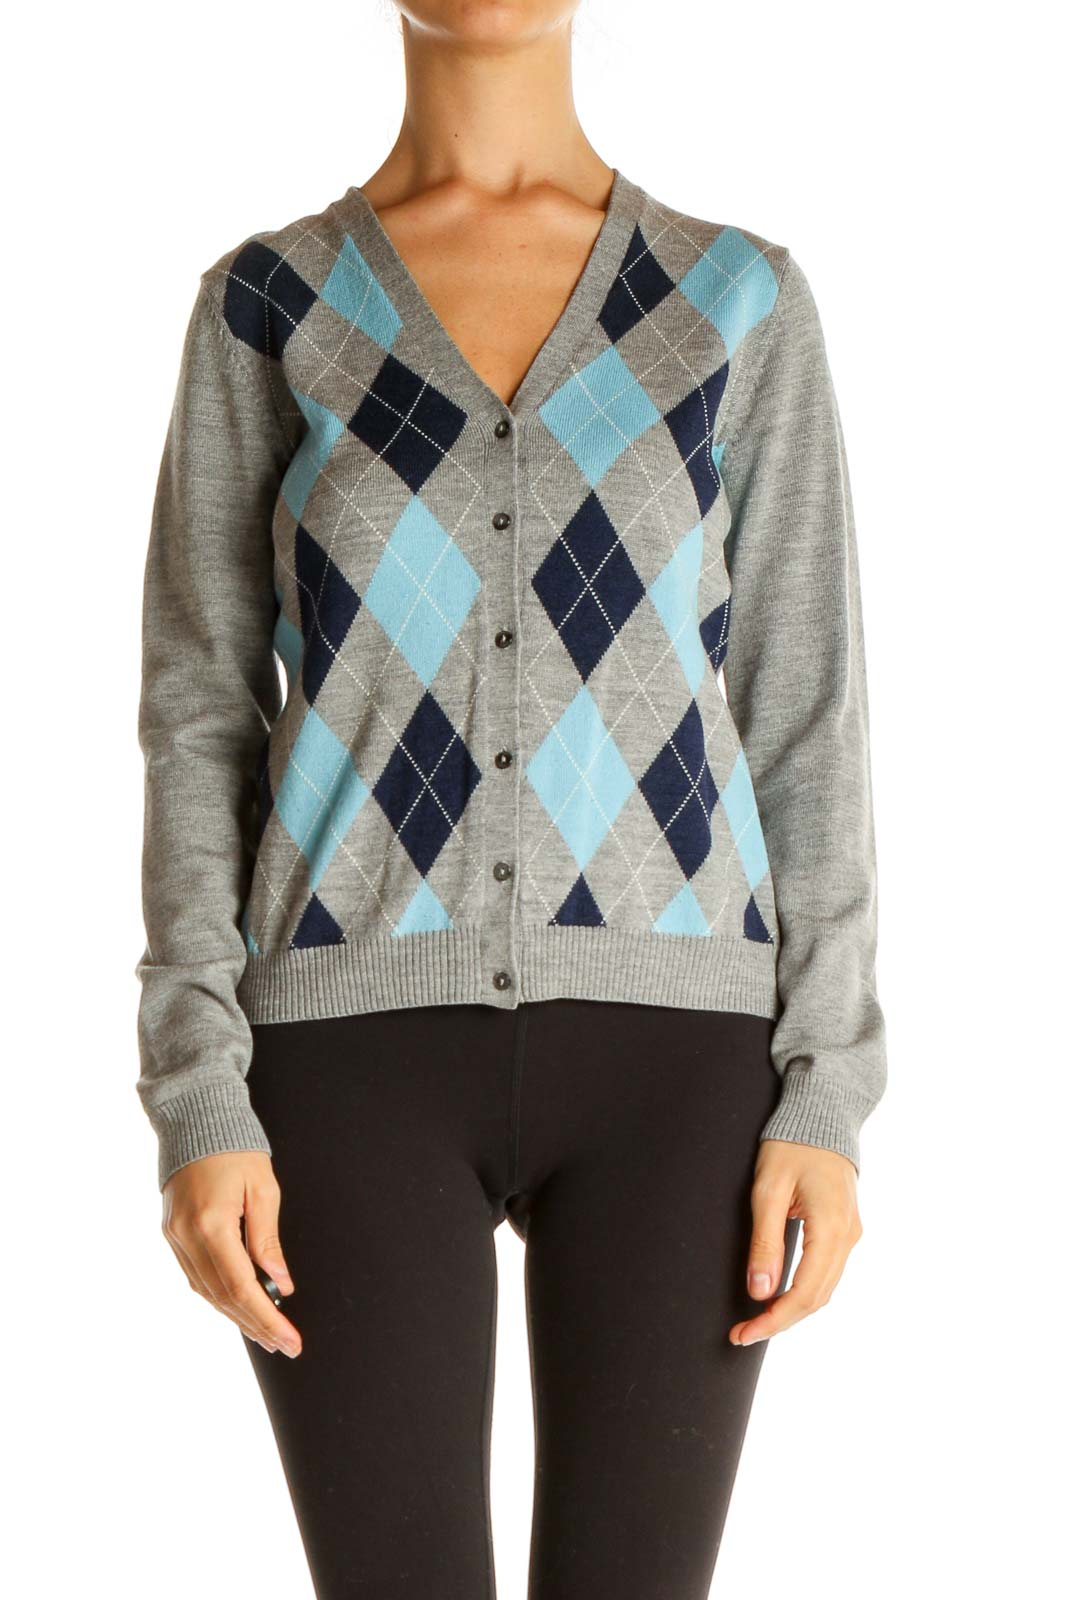 Gray Argyle Print All Day Wear Sweater Front